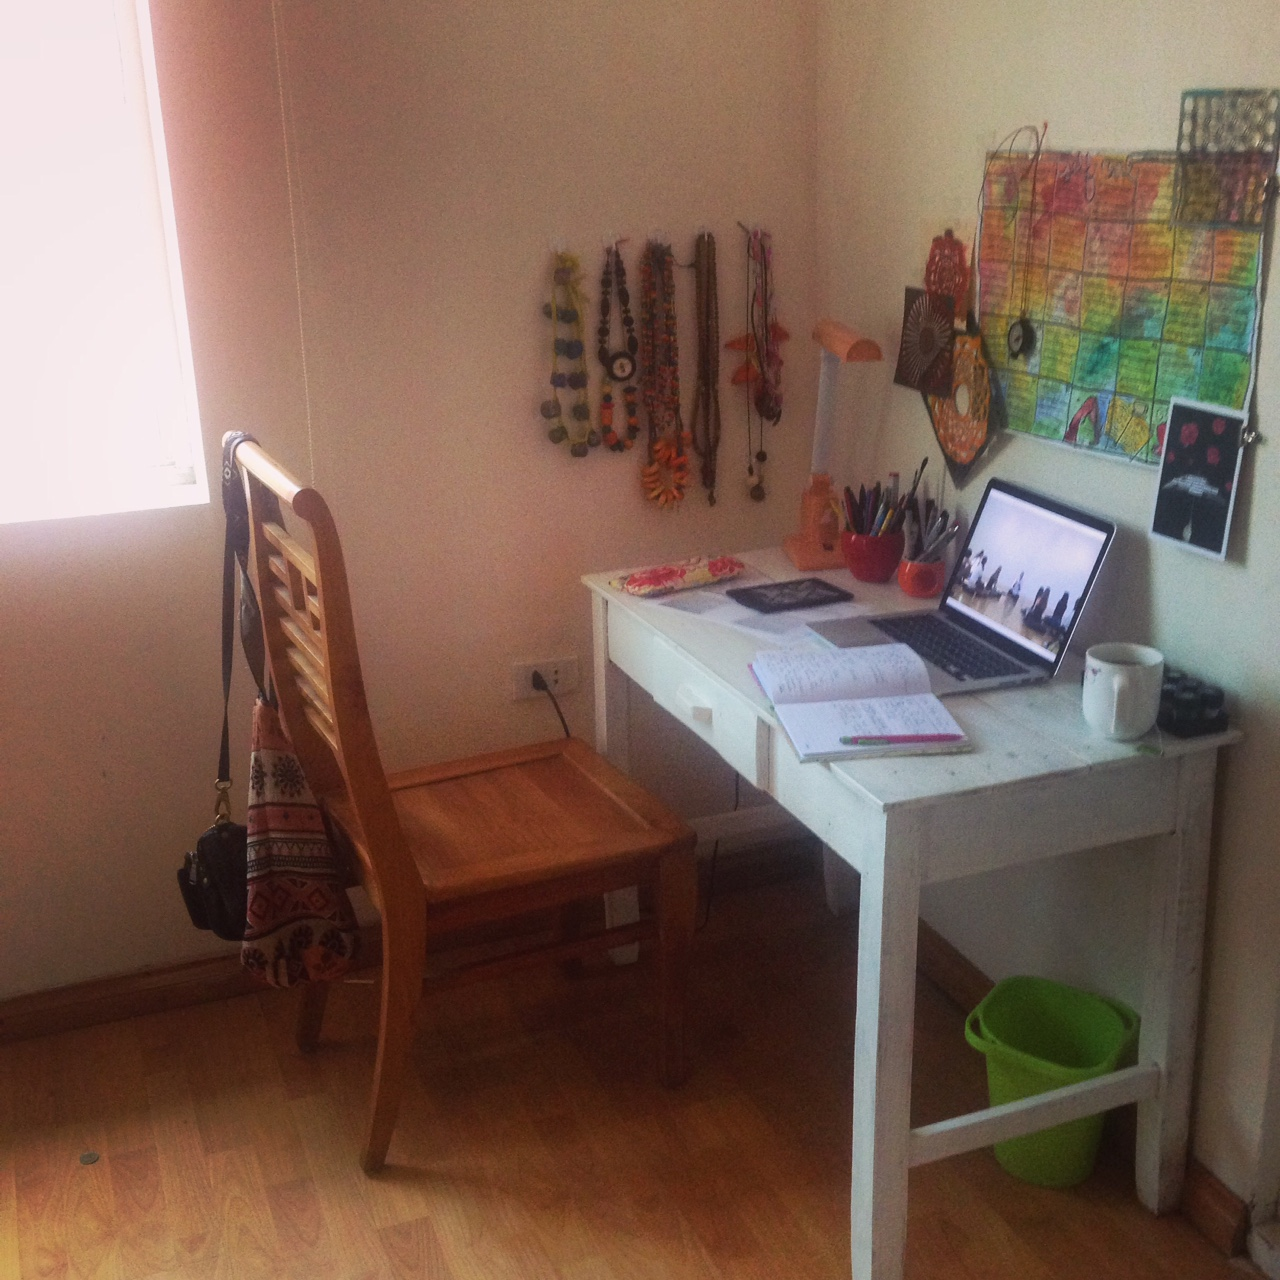 My new study space at home